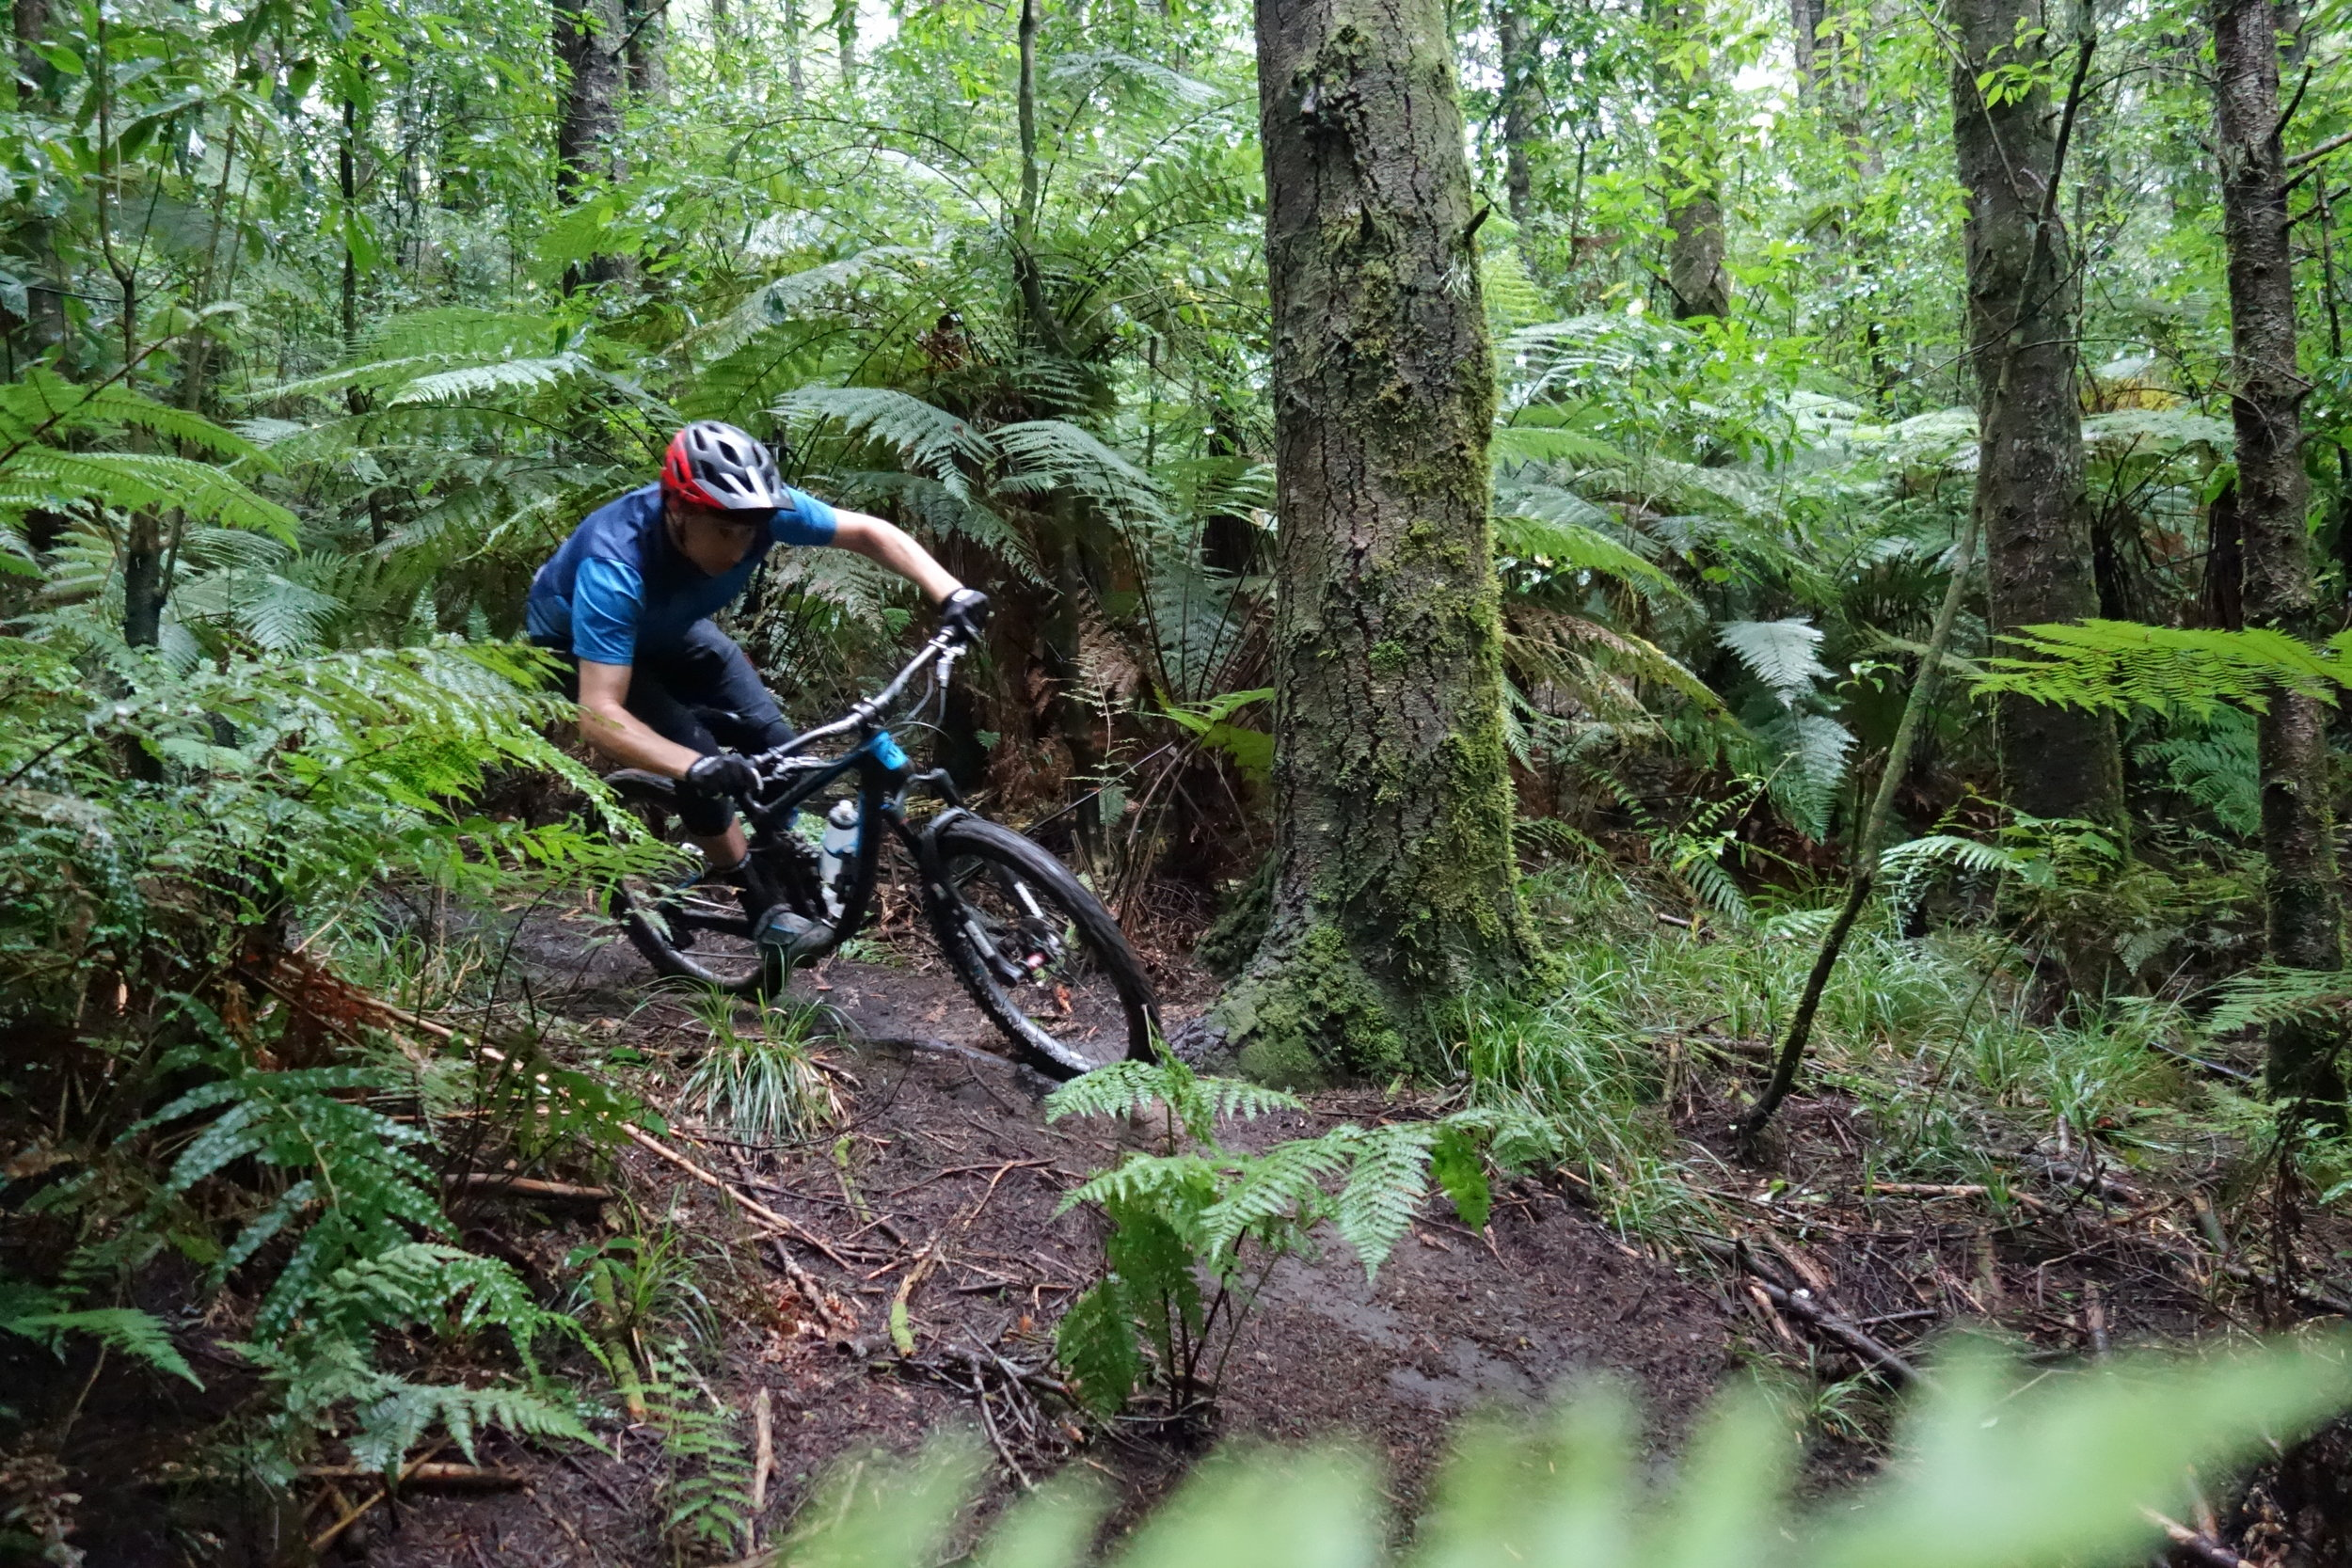 The next day after torrential rain and the trails are nearly dry already. Hero dirt for miles with a few slippy bits for added fun. Jeff Carter is surprisingly fresh after his 4th place in Masters at the EWS.